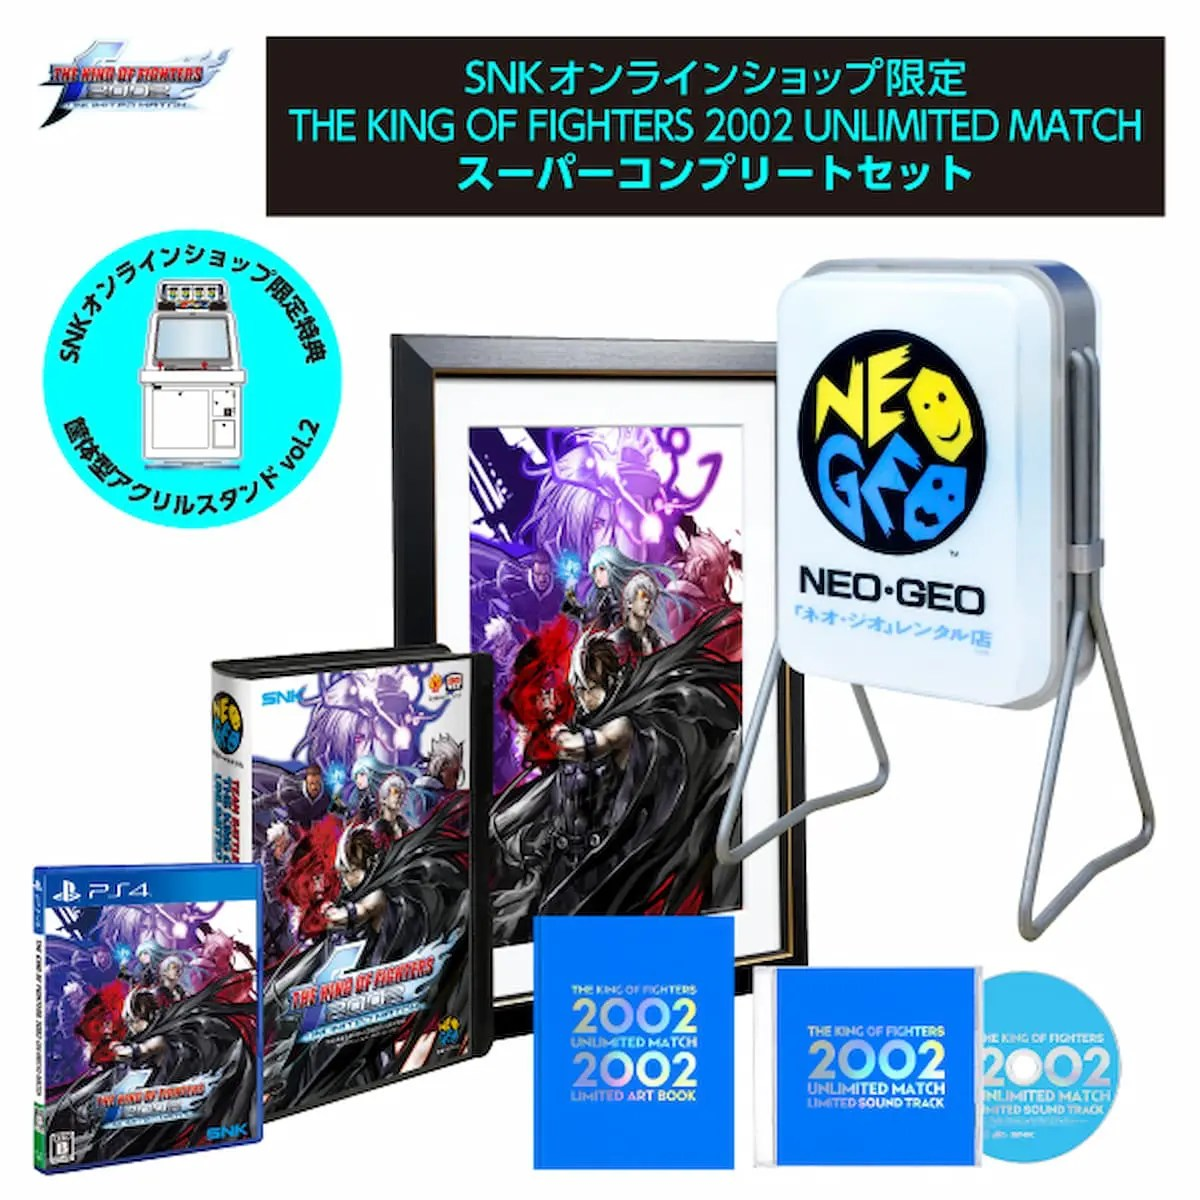 THE KING OF FIGHTERS 2002 UNLIMITED MATCH スーパーコンプリートセット - PS4